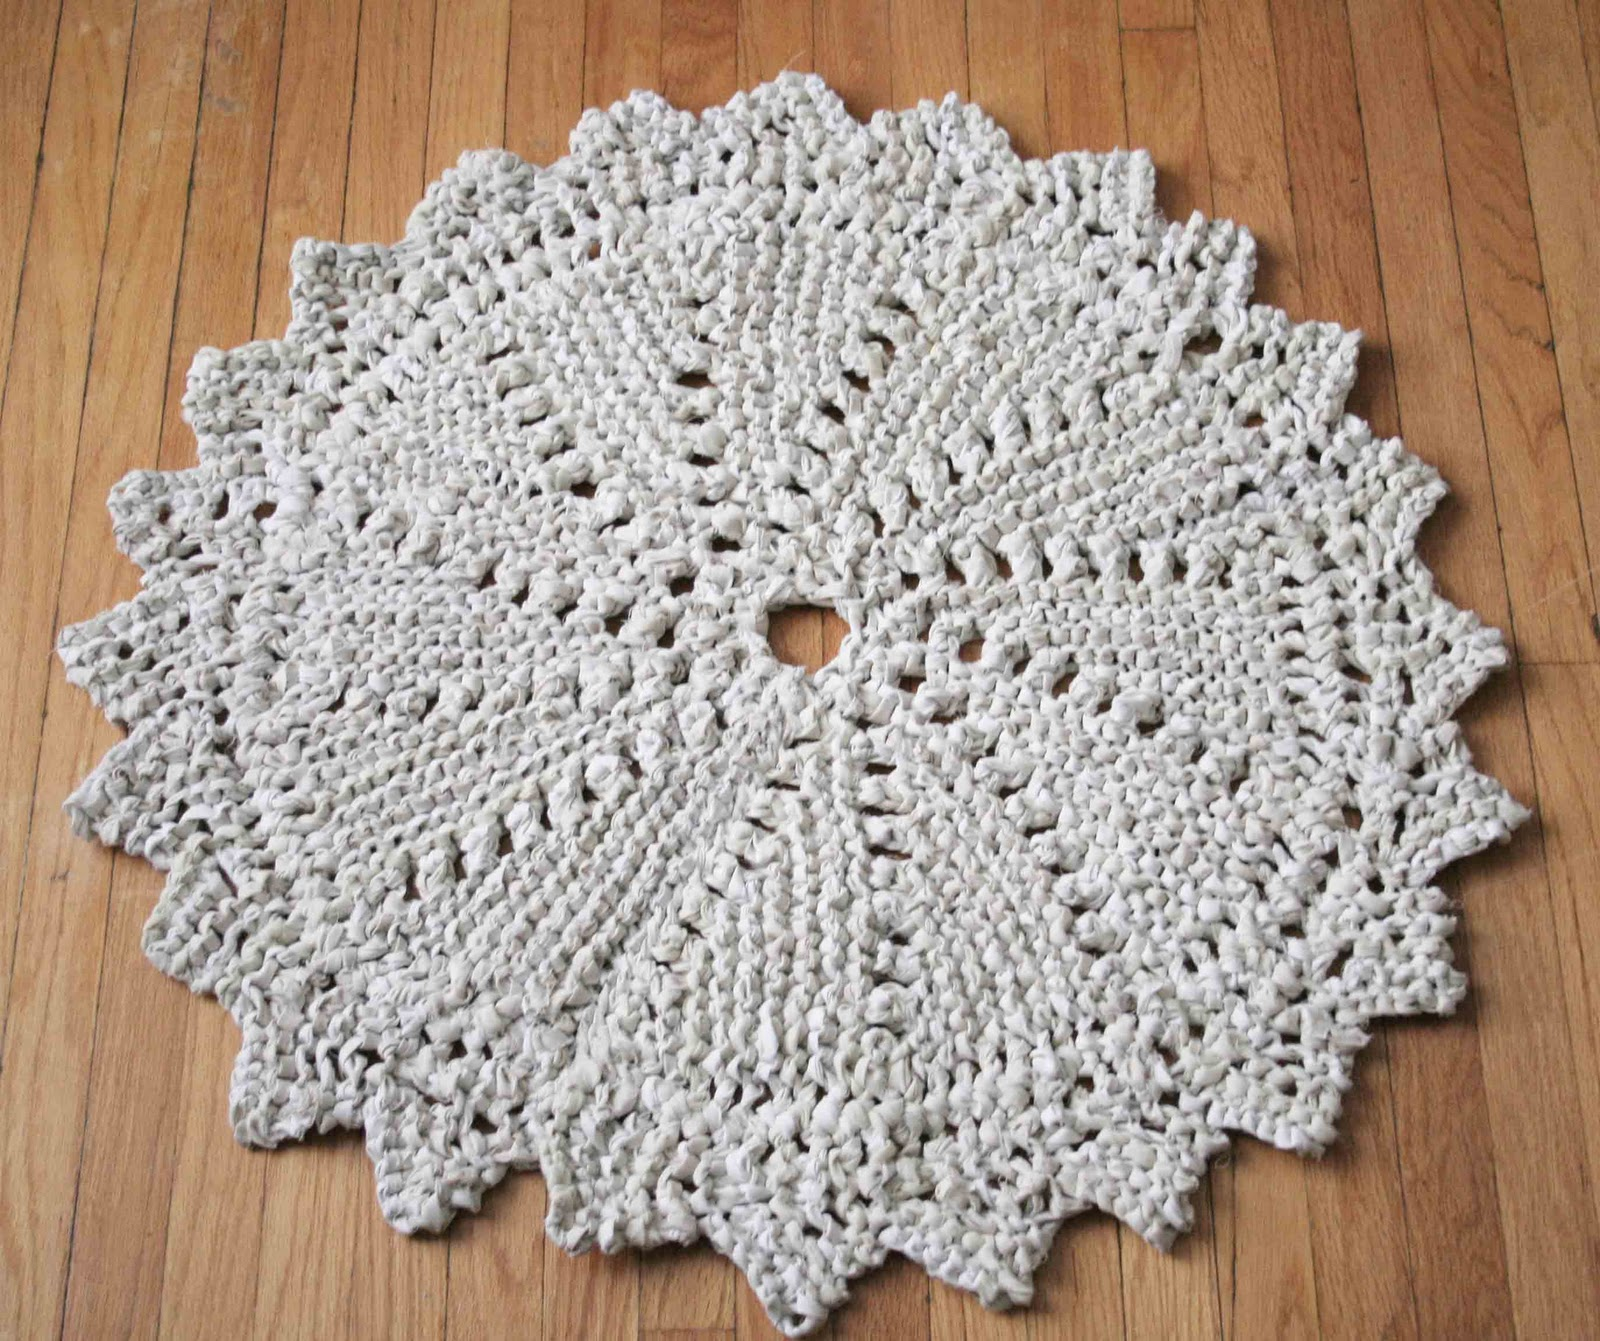 How To Knit A Rug Little Projectiles Knitted Rag Rug